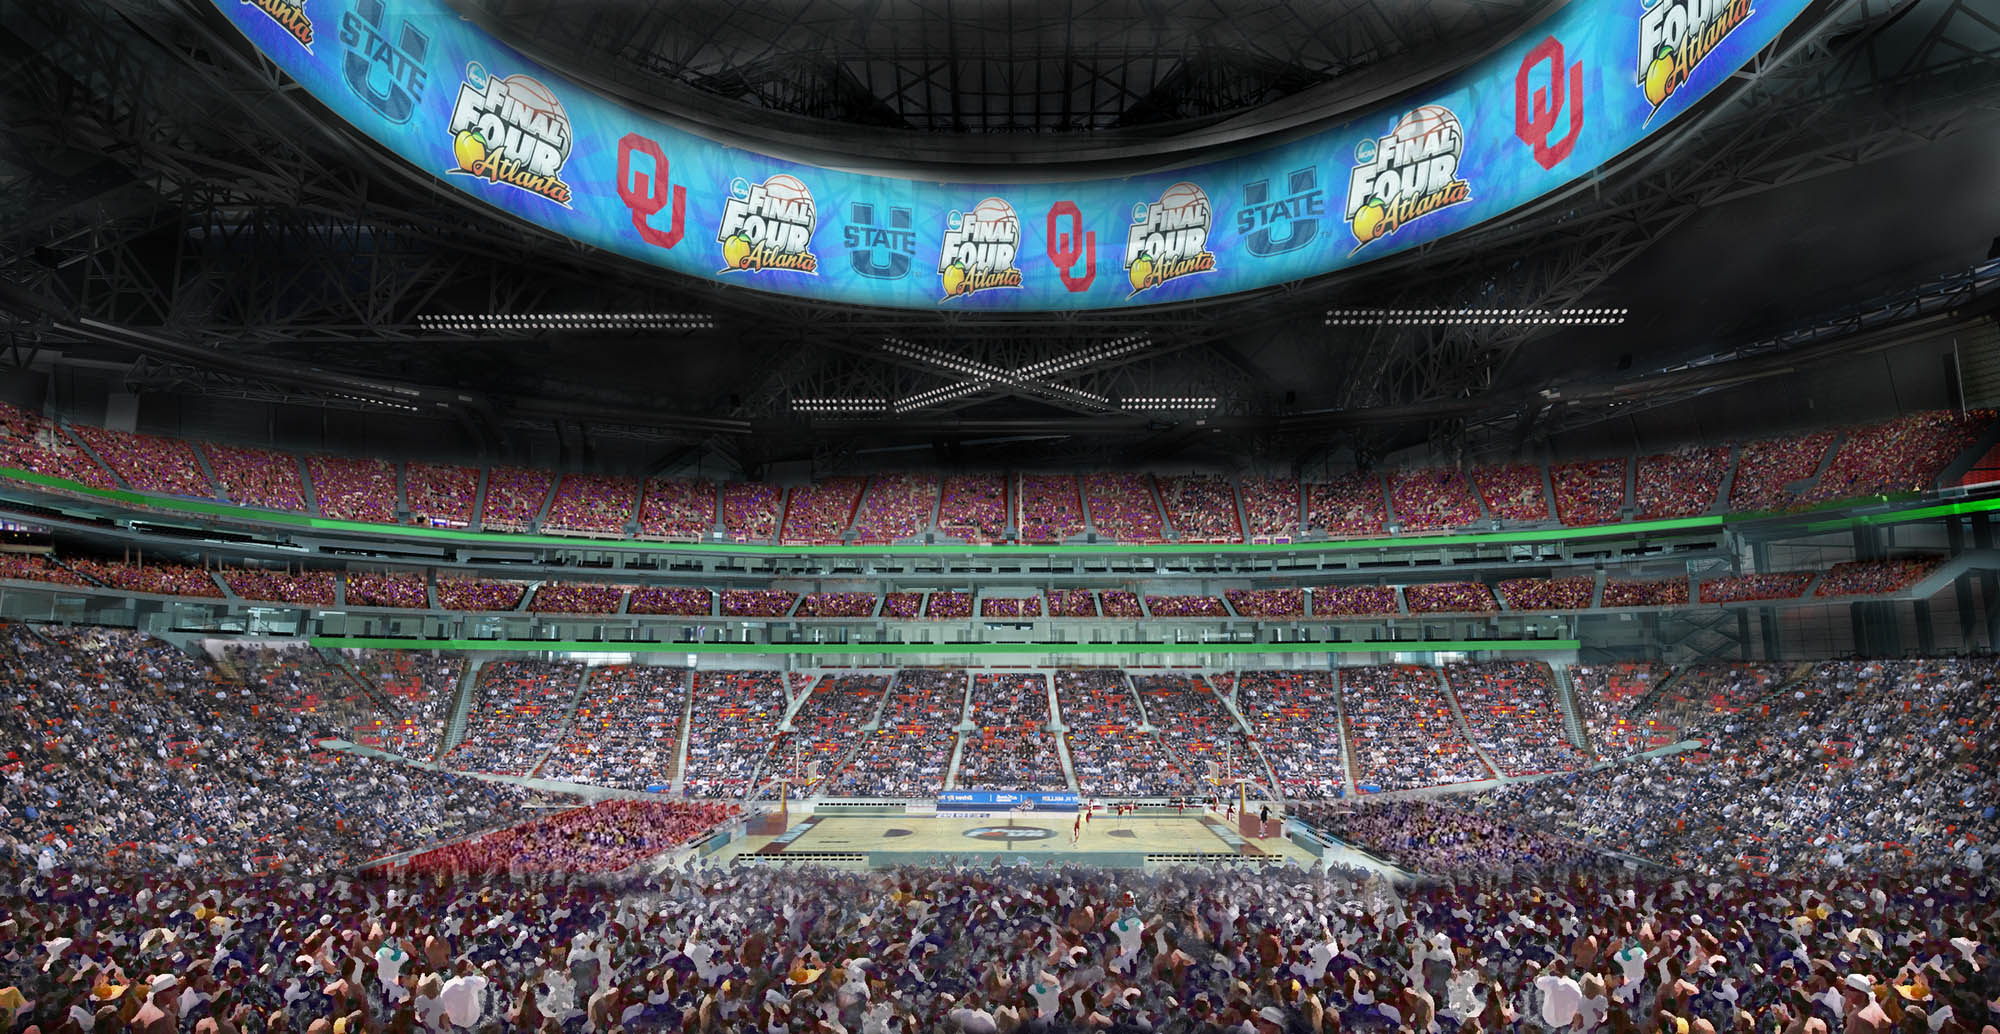 final four NCAA 2020 new atlanta stadium